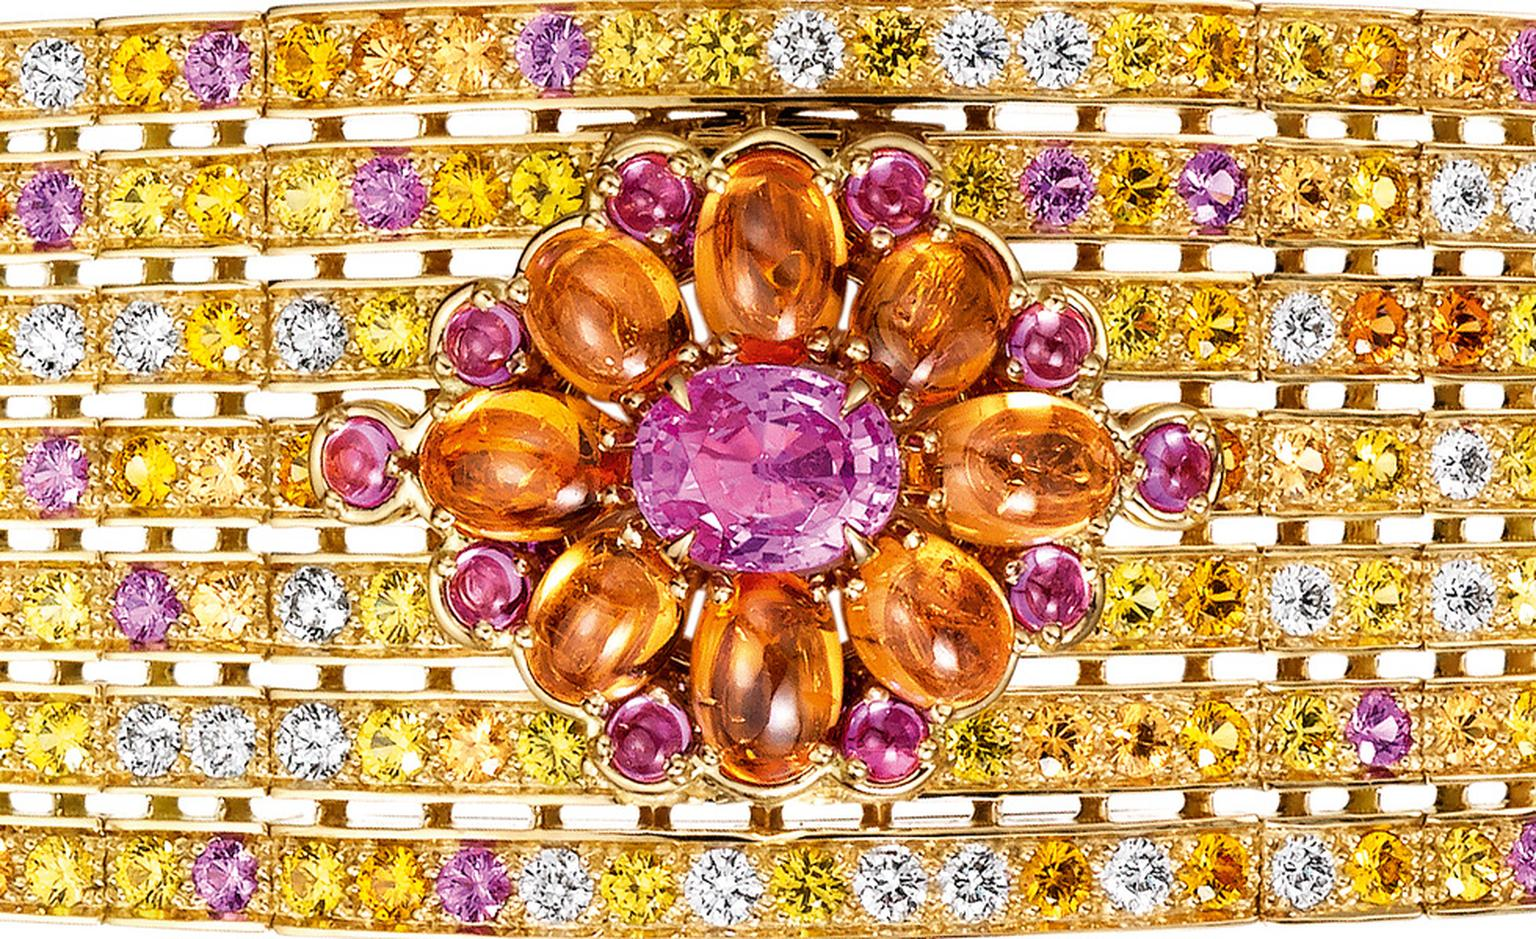 Boucheron close up of the Isola Bella   watch   bracelet,   set   with   a   pink   oval   sapphire   and   pink   and   orange   cabochon       sapphires,   paved   with   yellow,   pink   and   orange   sapphires,   emeralds   and   diamonds, ...